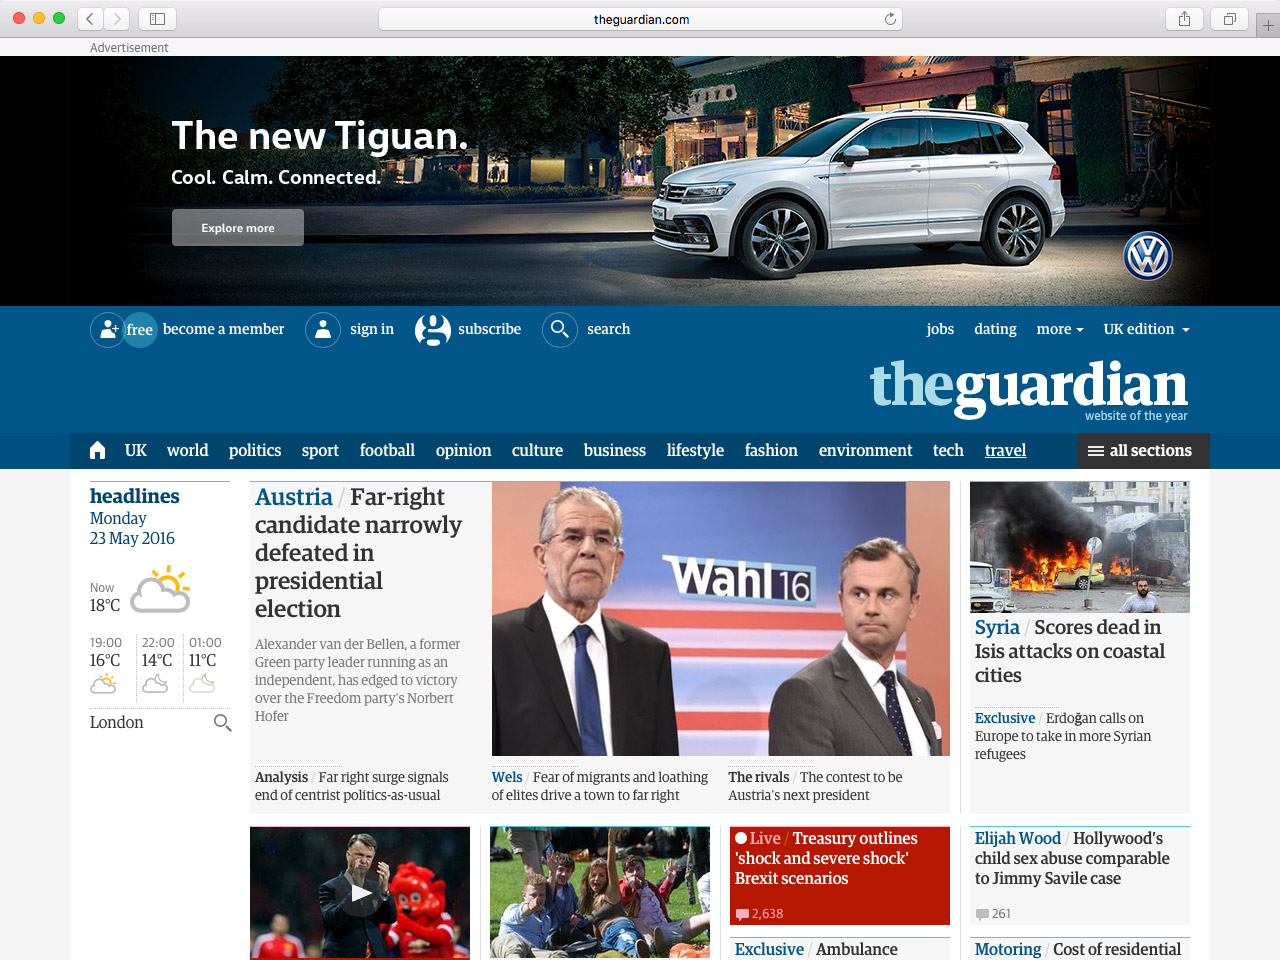 A real-world example of a Priorty+ navigation on the Guardian website